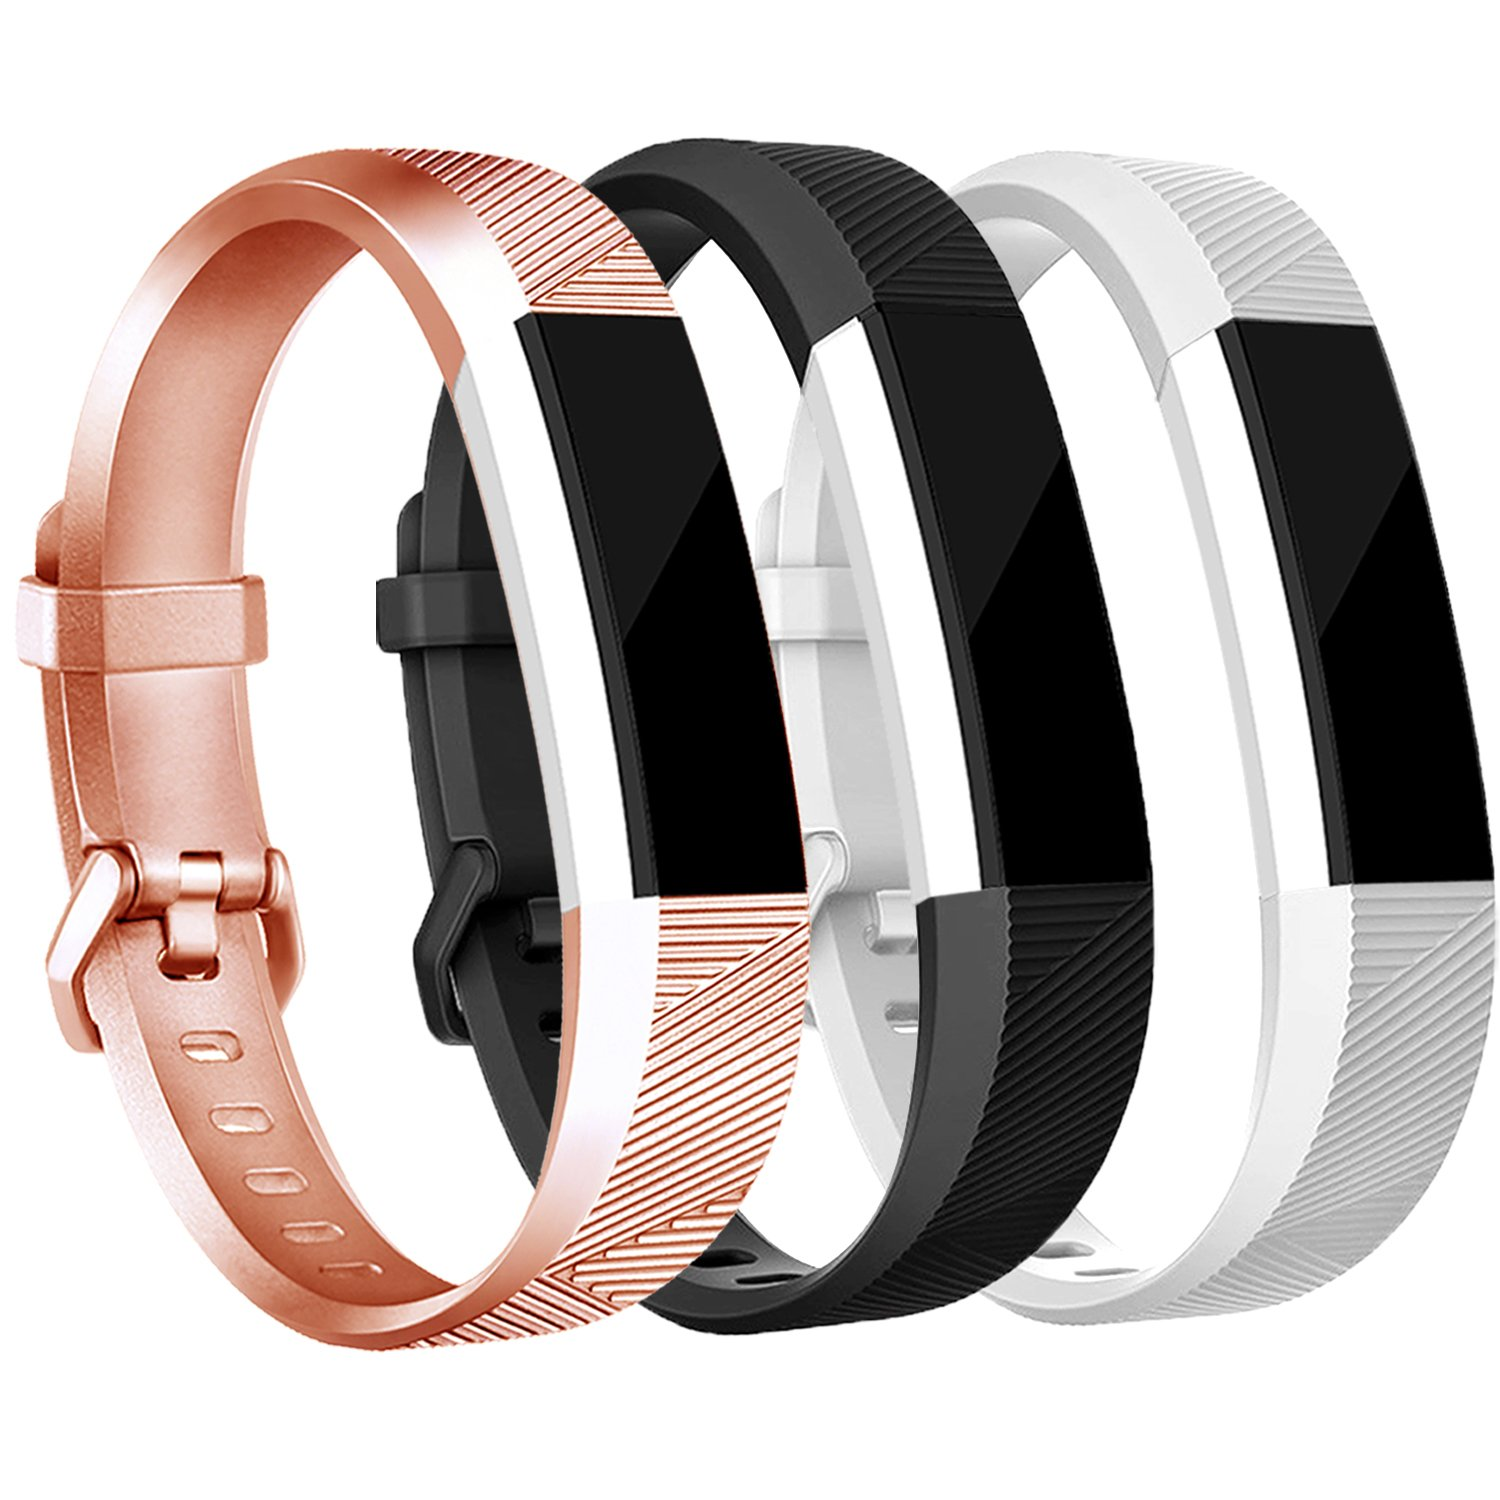 tobfit Fitbit ALTA用HRバンドレディース、メンズ、最新スタイル – スムースTpuローズゴールドandゴールドクラシックFitbit ALTA WatchアクセサリーWristbands with Metal Buckle/Clasp for Fitbit ALTAアルタHRと  buckle 3PCS-Rose Gold+Black+White Large(6.7\ B077D47J84